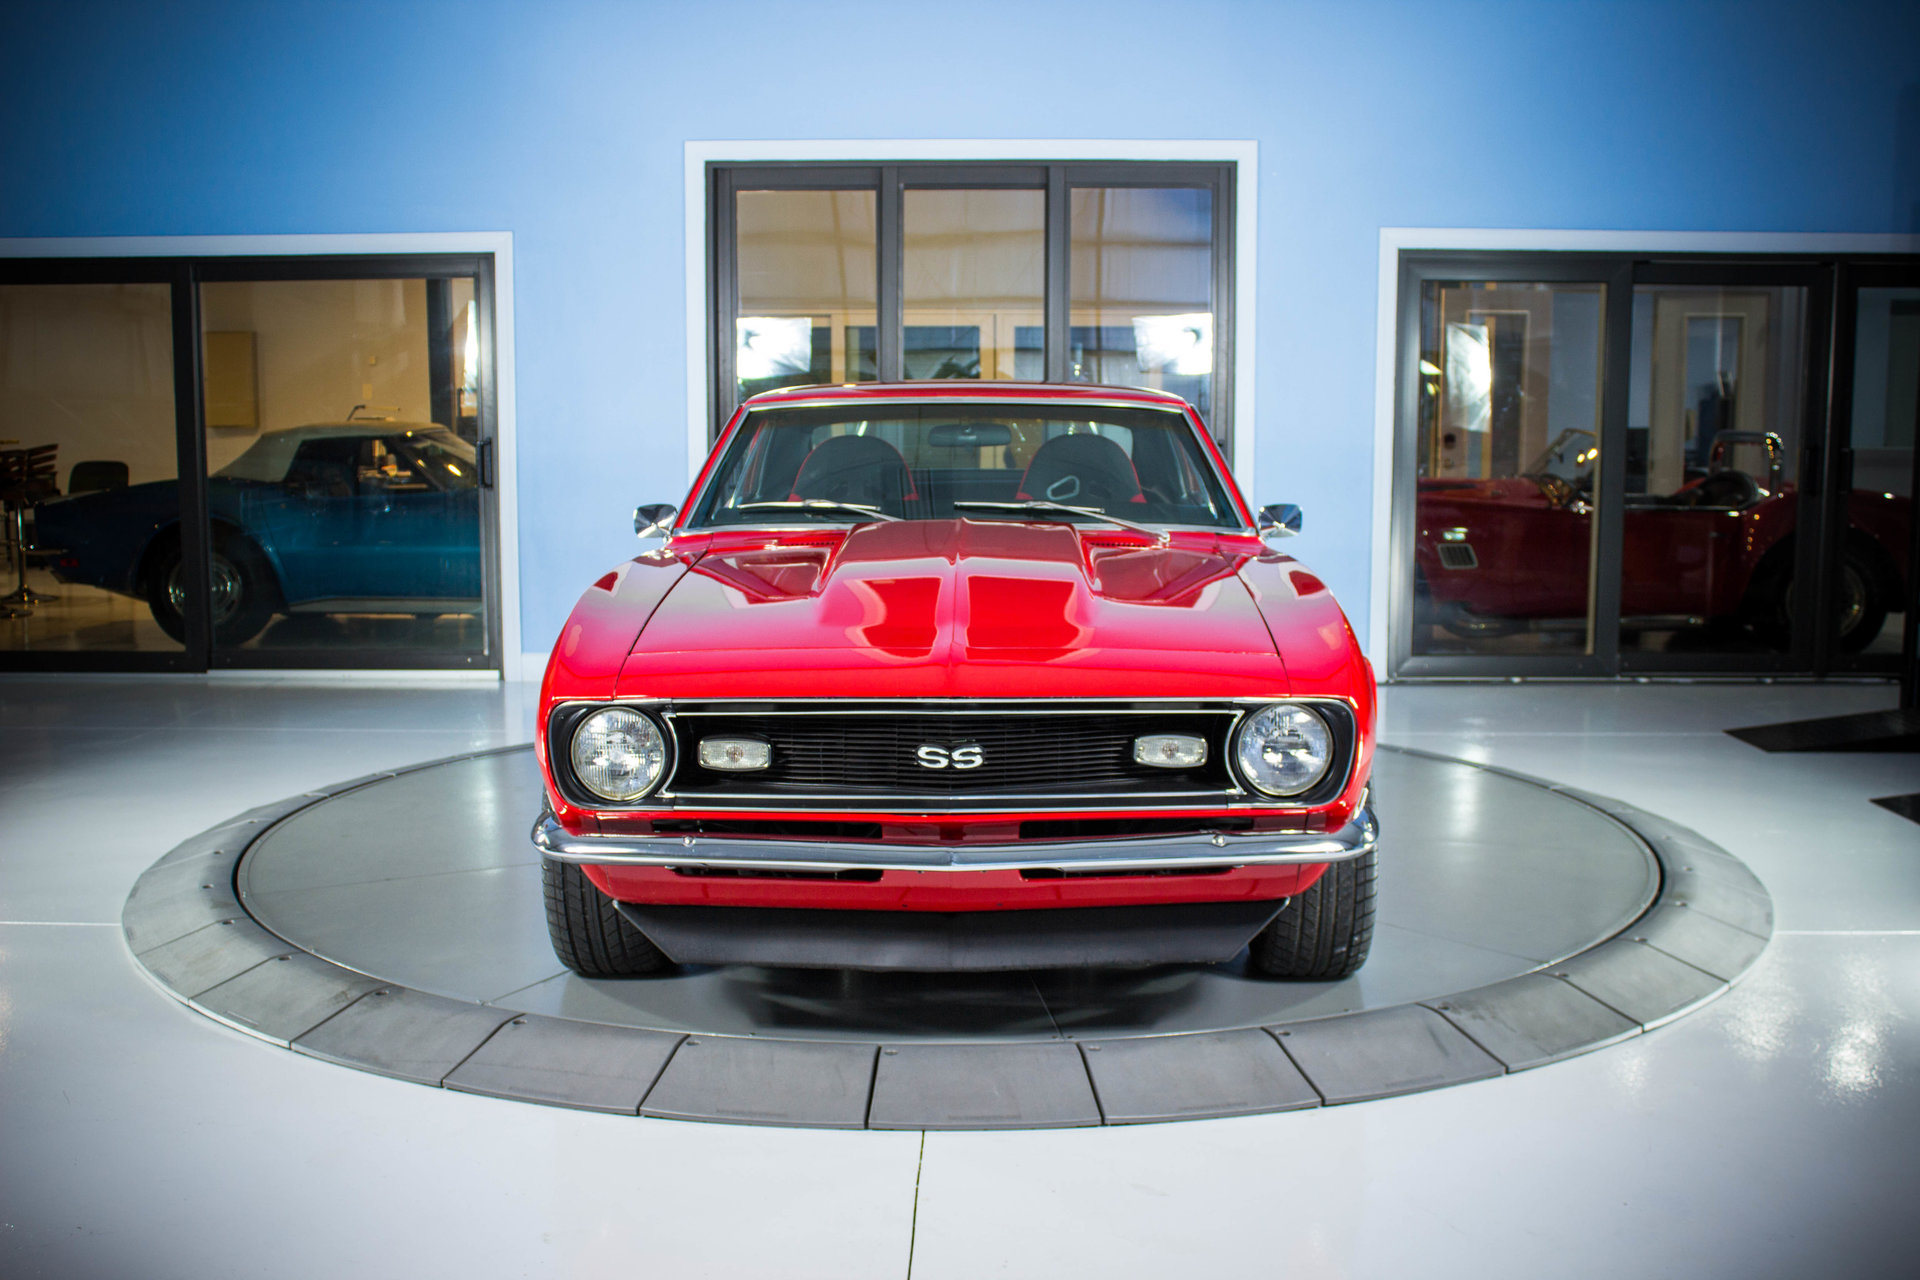 1968 Chevrolet Rs Ss Camaro Tribute Classic Cars Used For